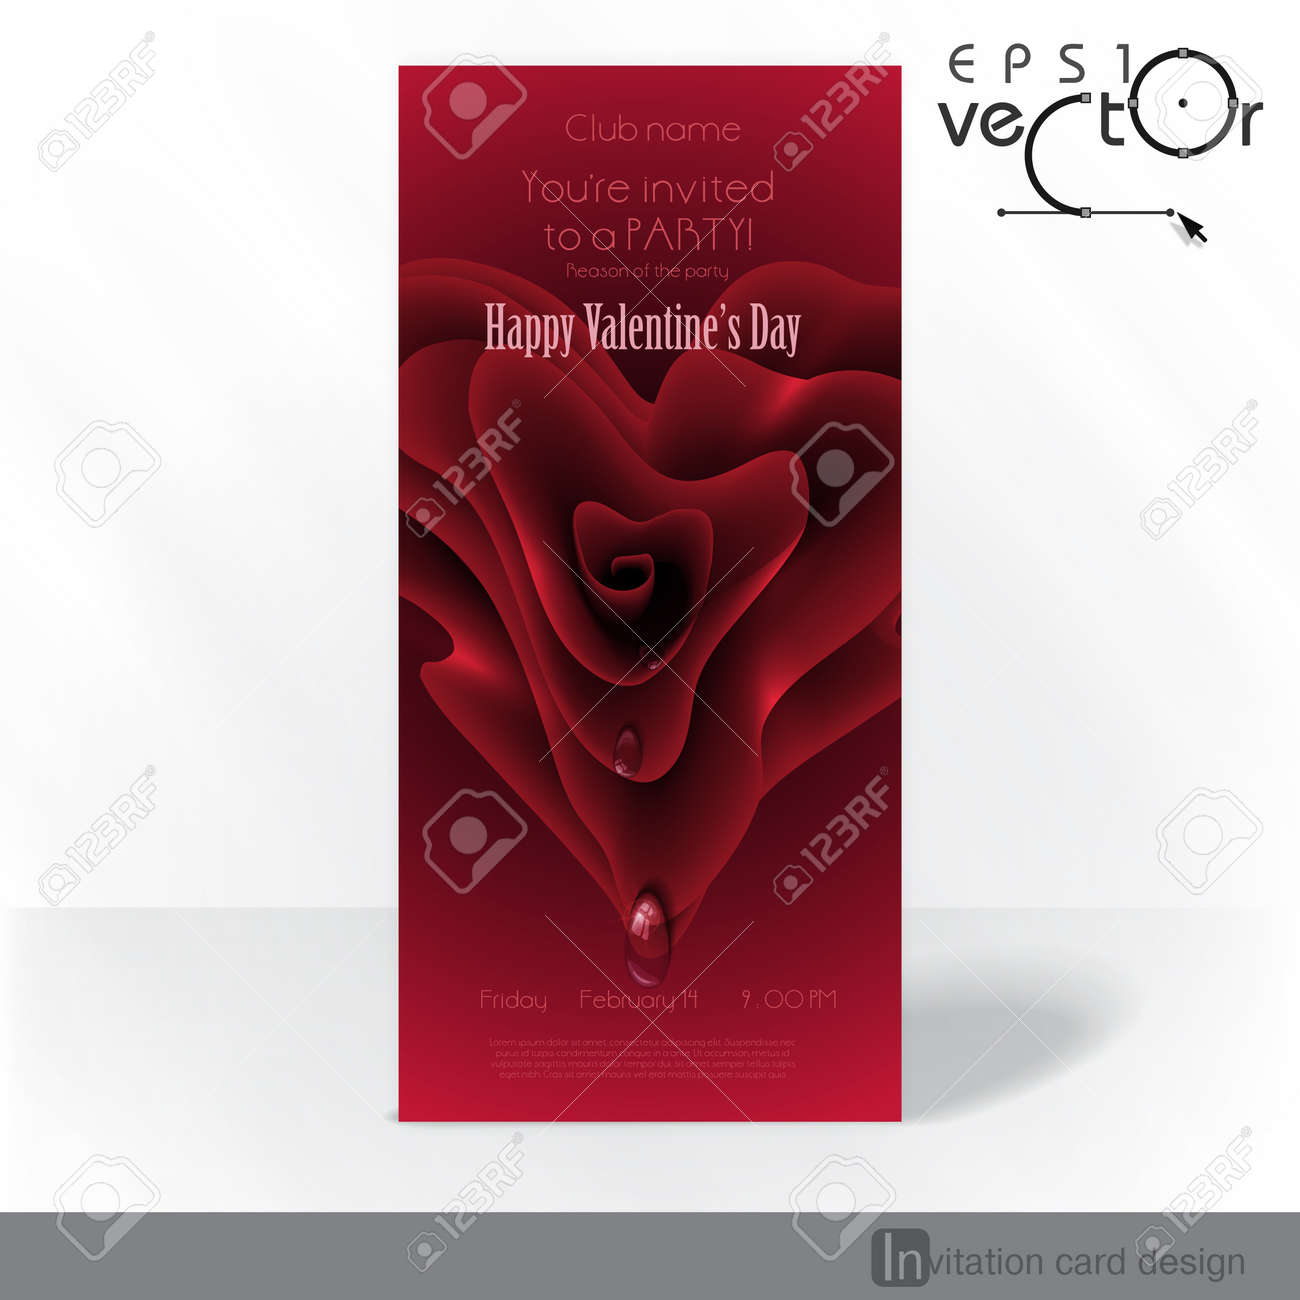 Party Invitation Card Design Template Happy Valentines Day